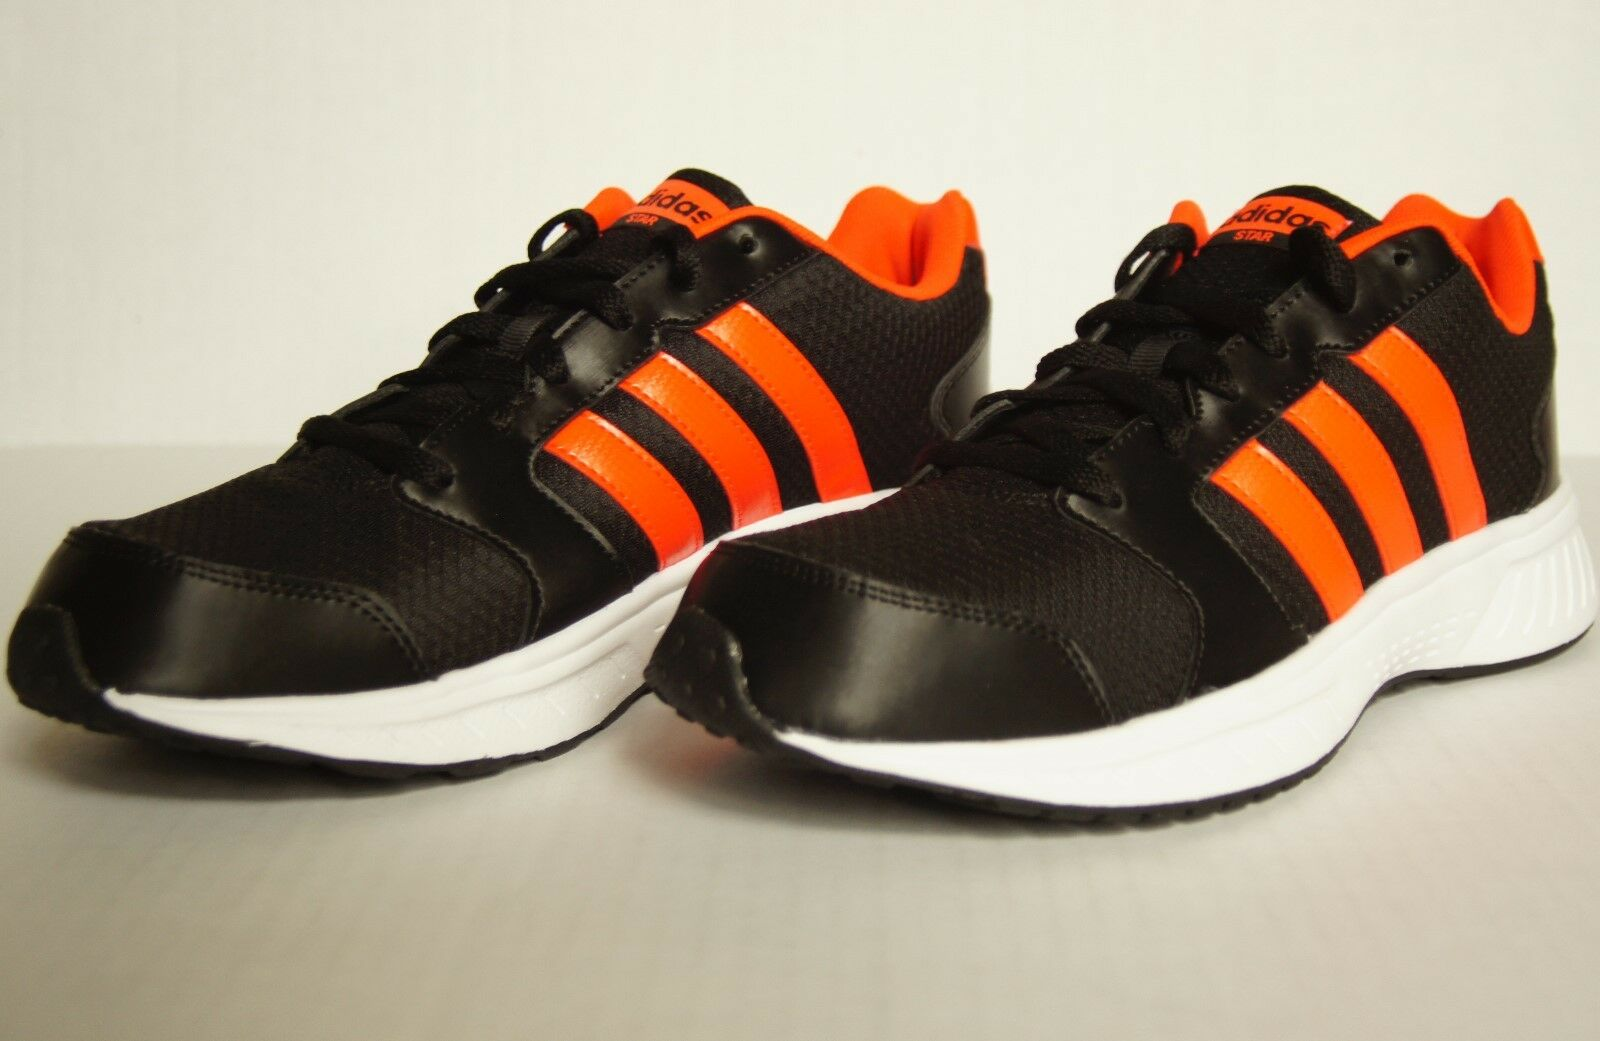 New Mens Adidas Neo VS Star Running/Athletic Shoes Sz 9 AW5261 Black/Solar Red Wild casual shoes